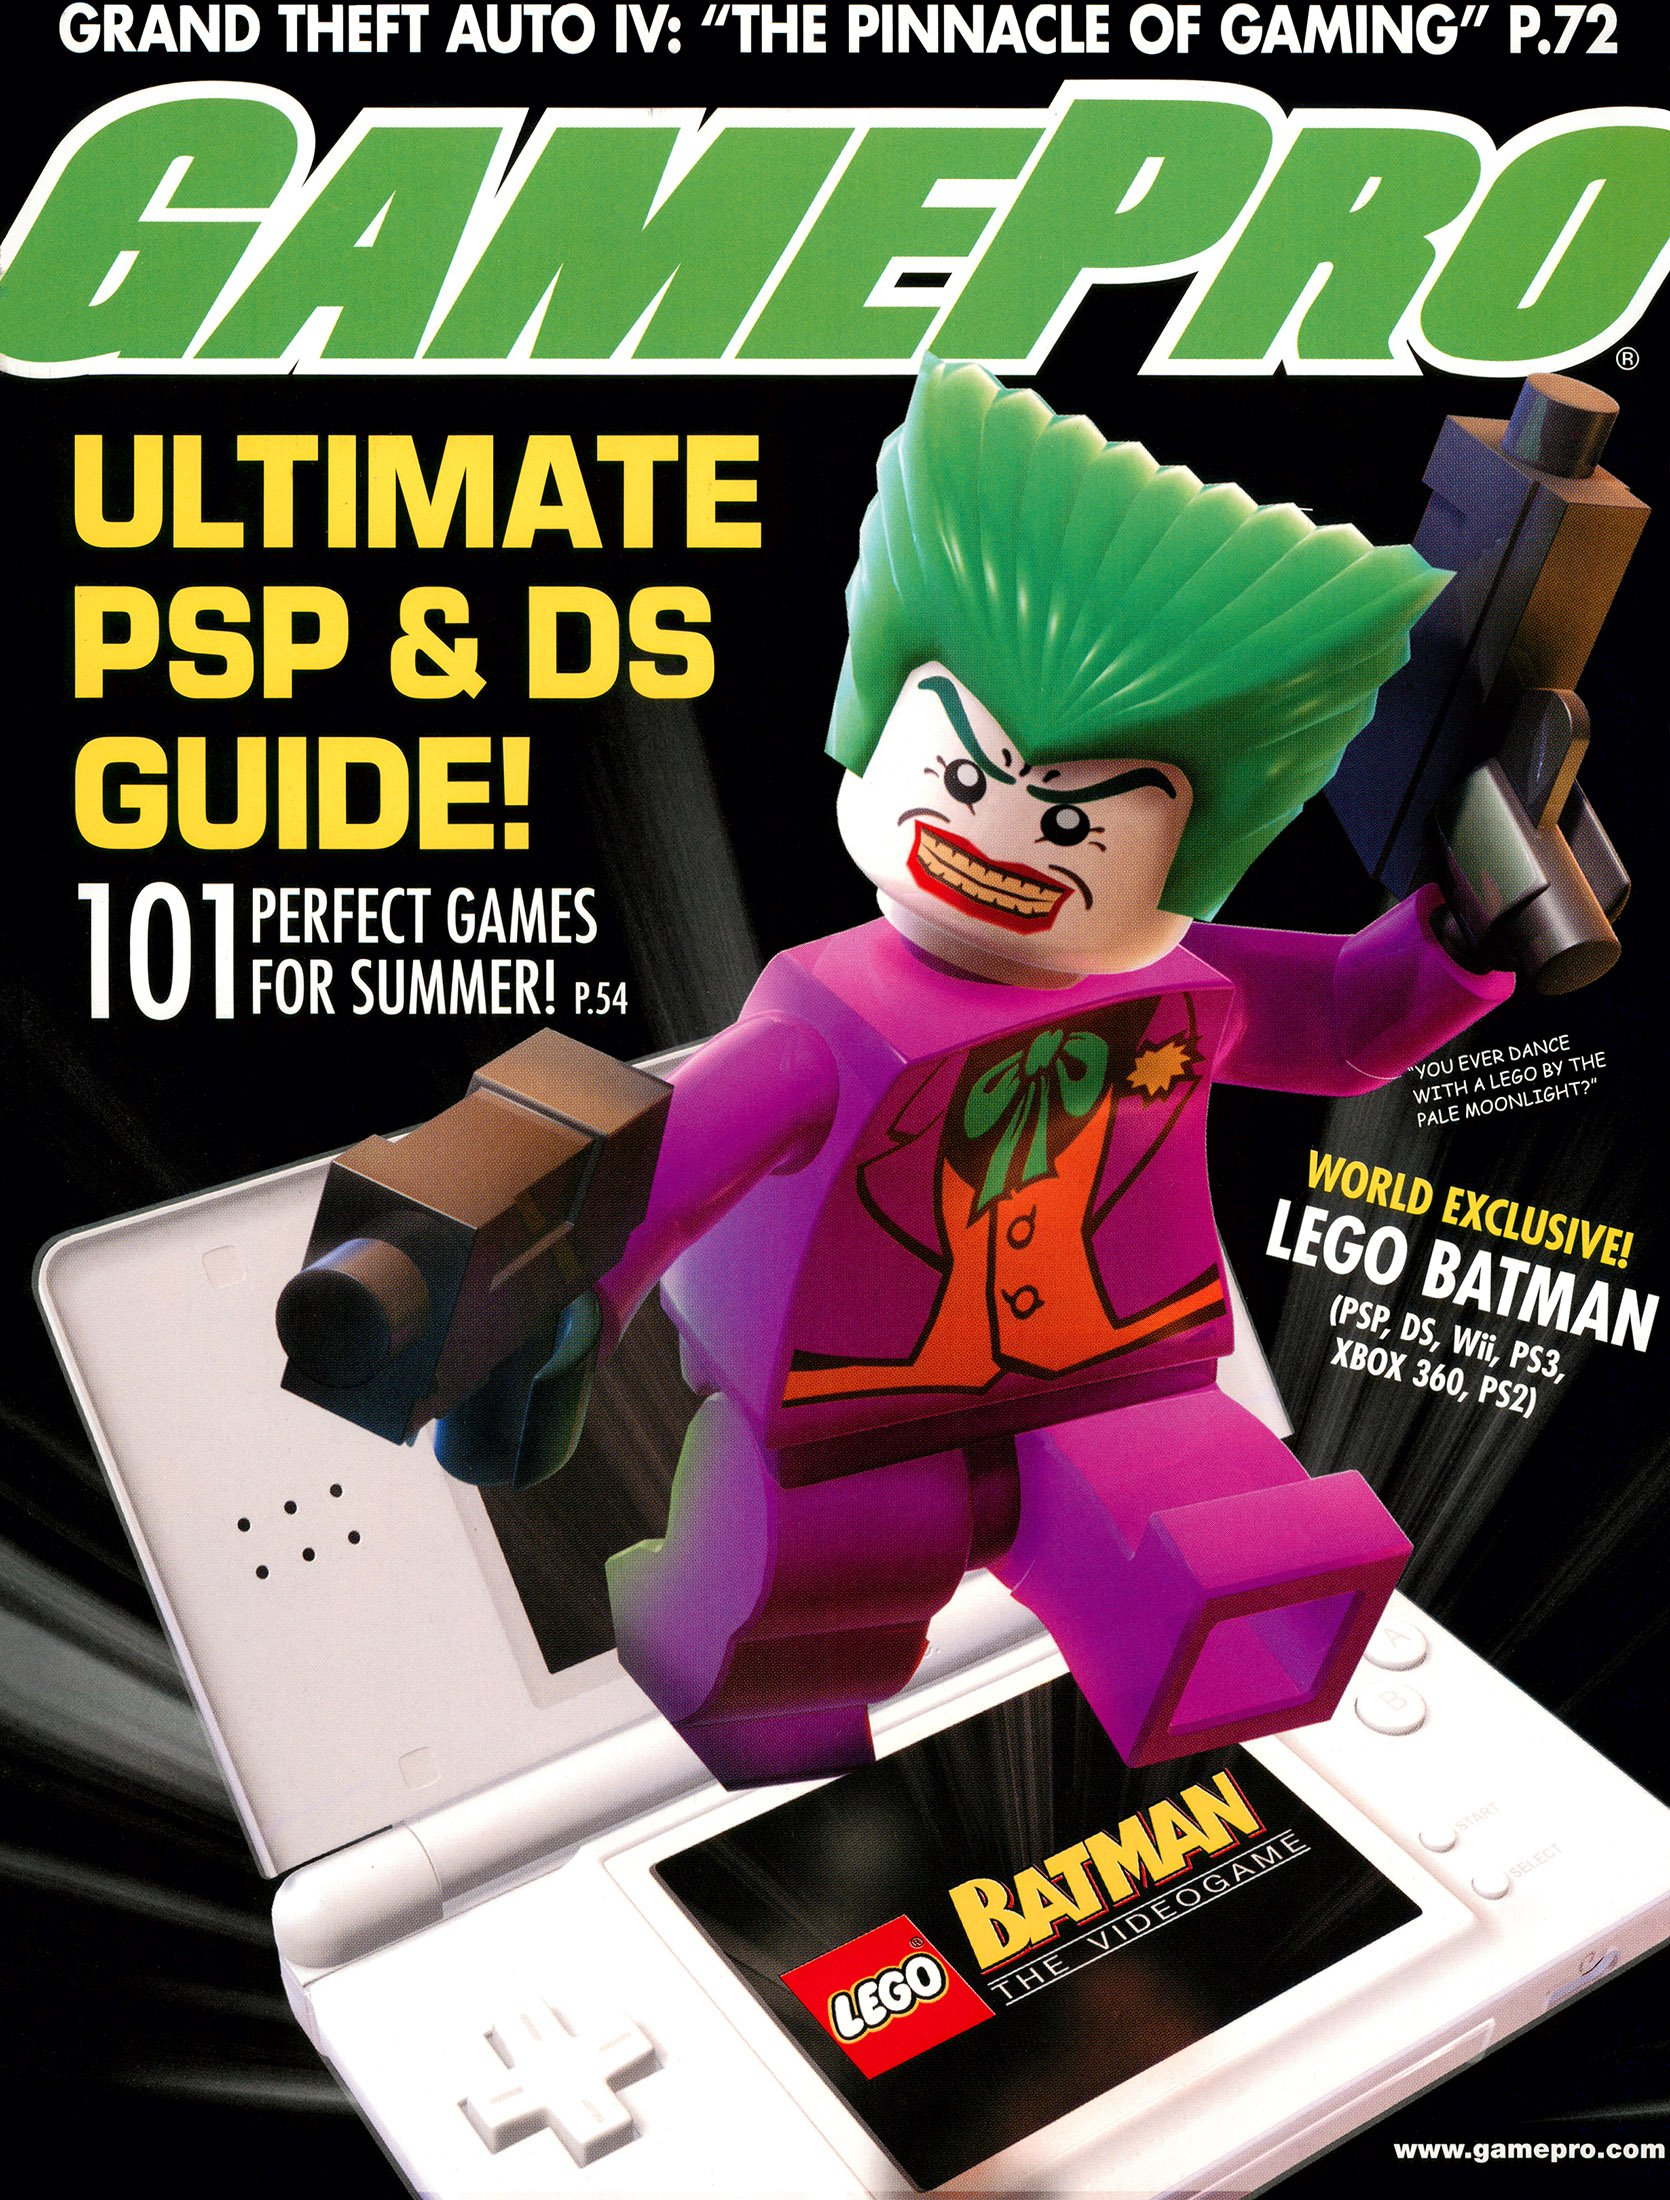 GamePro Issue 237 June 2008 (Cover 2)